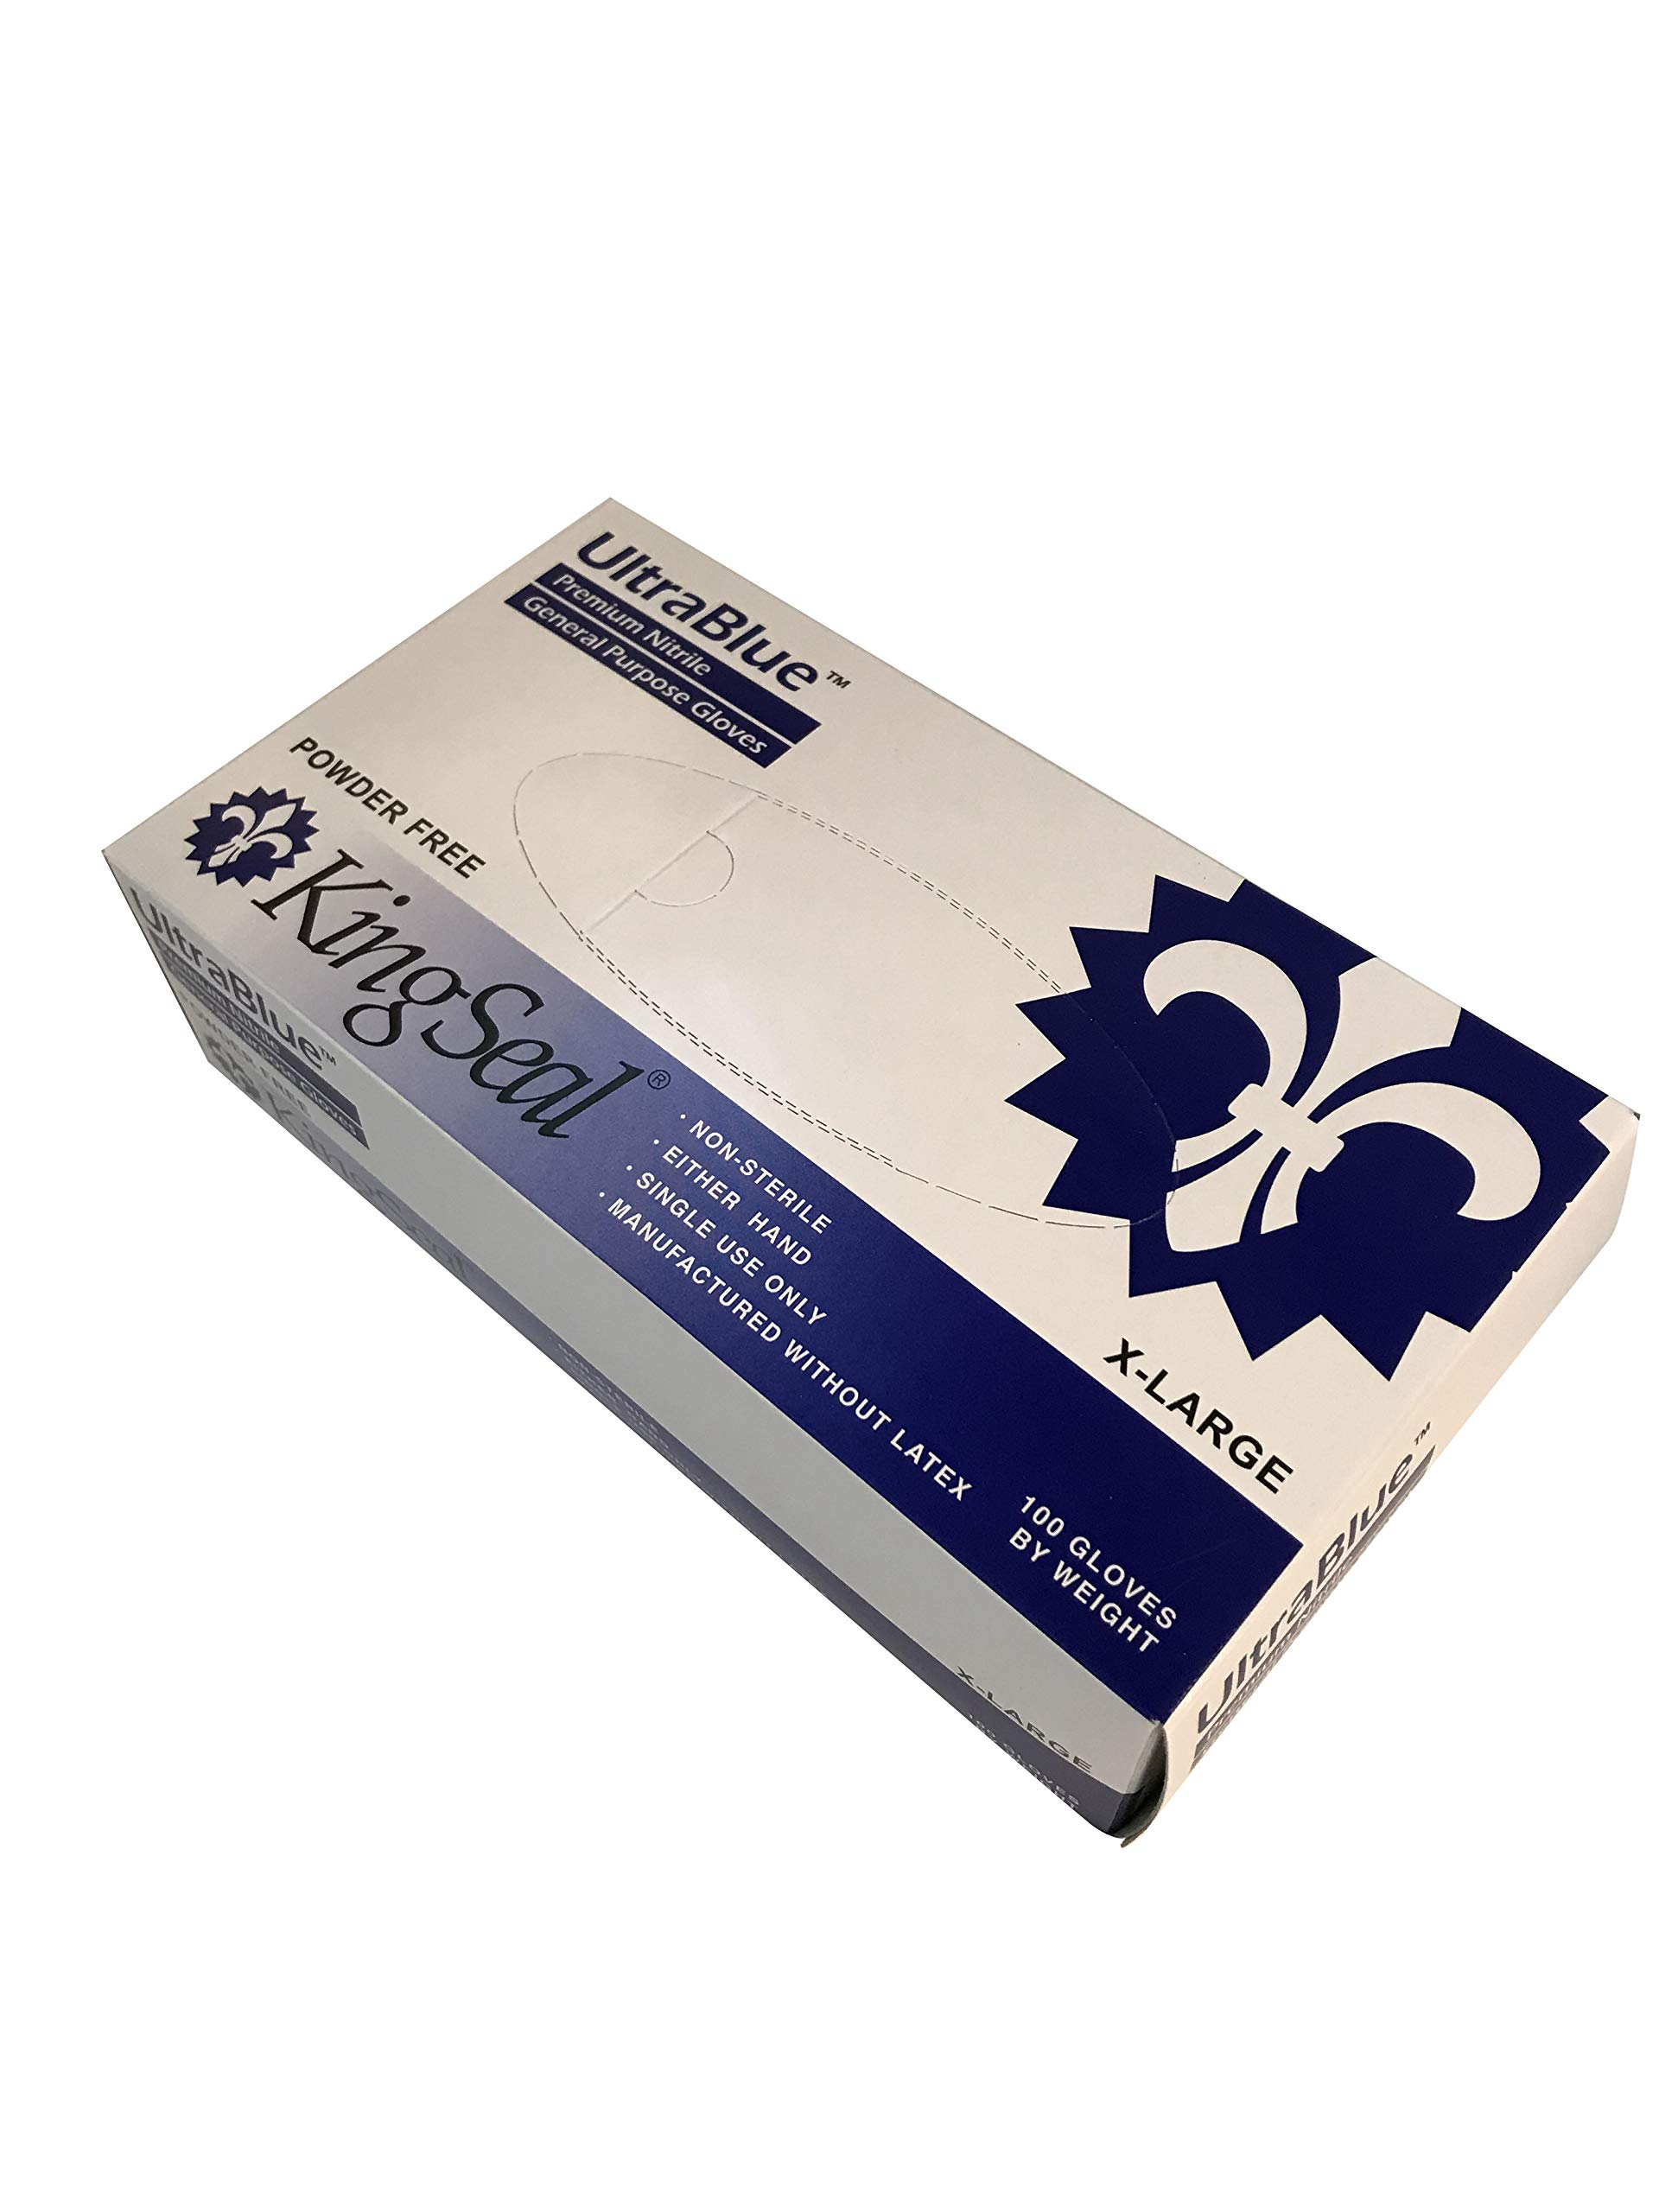 KingSeal UltraBlue Cobalt Indigo Blue Disposable Gloves, 4 mil, Latex-Free, Textured, Size X-Large - 4 boxes of 100 each (400pcs total) by KingSeal (Image #2)